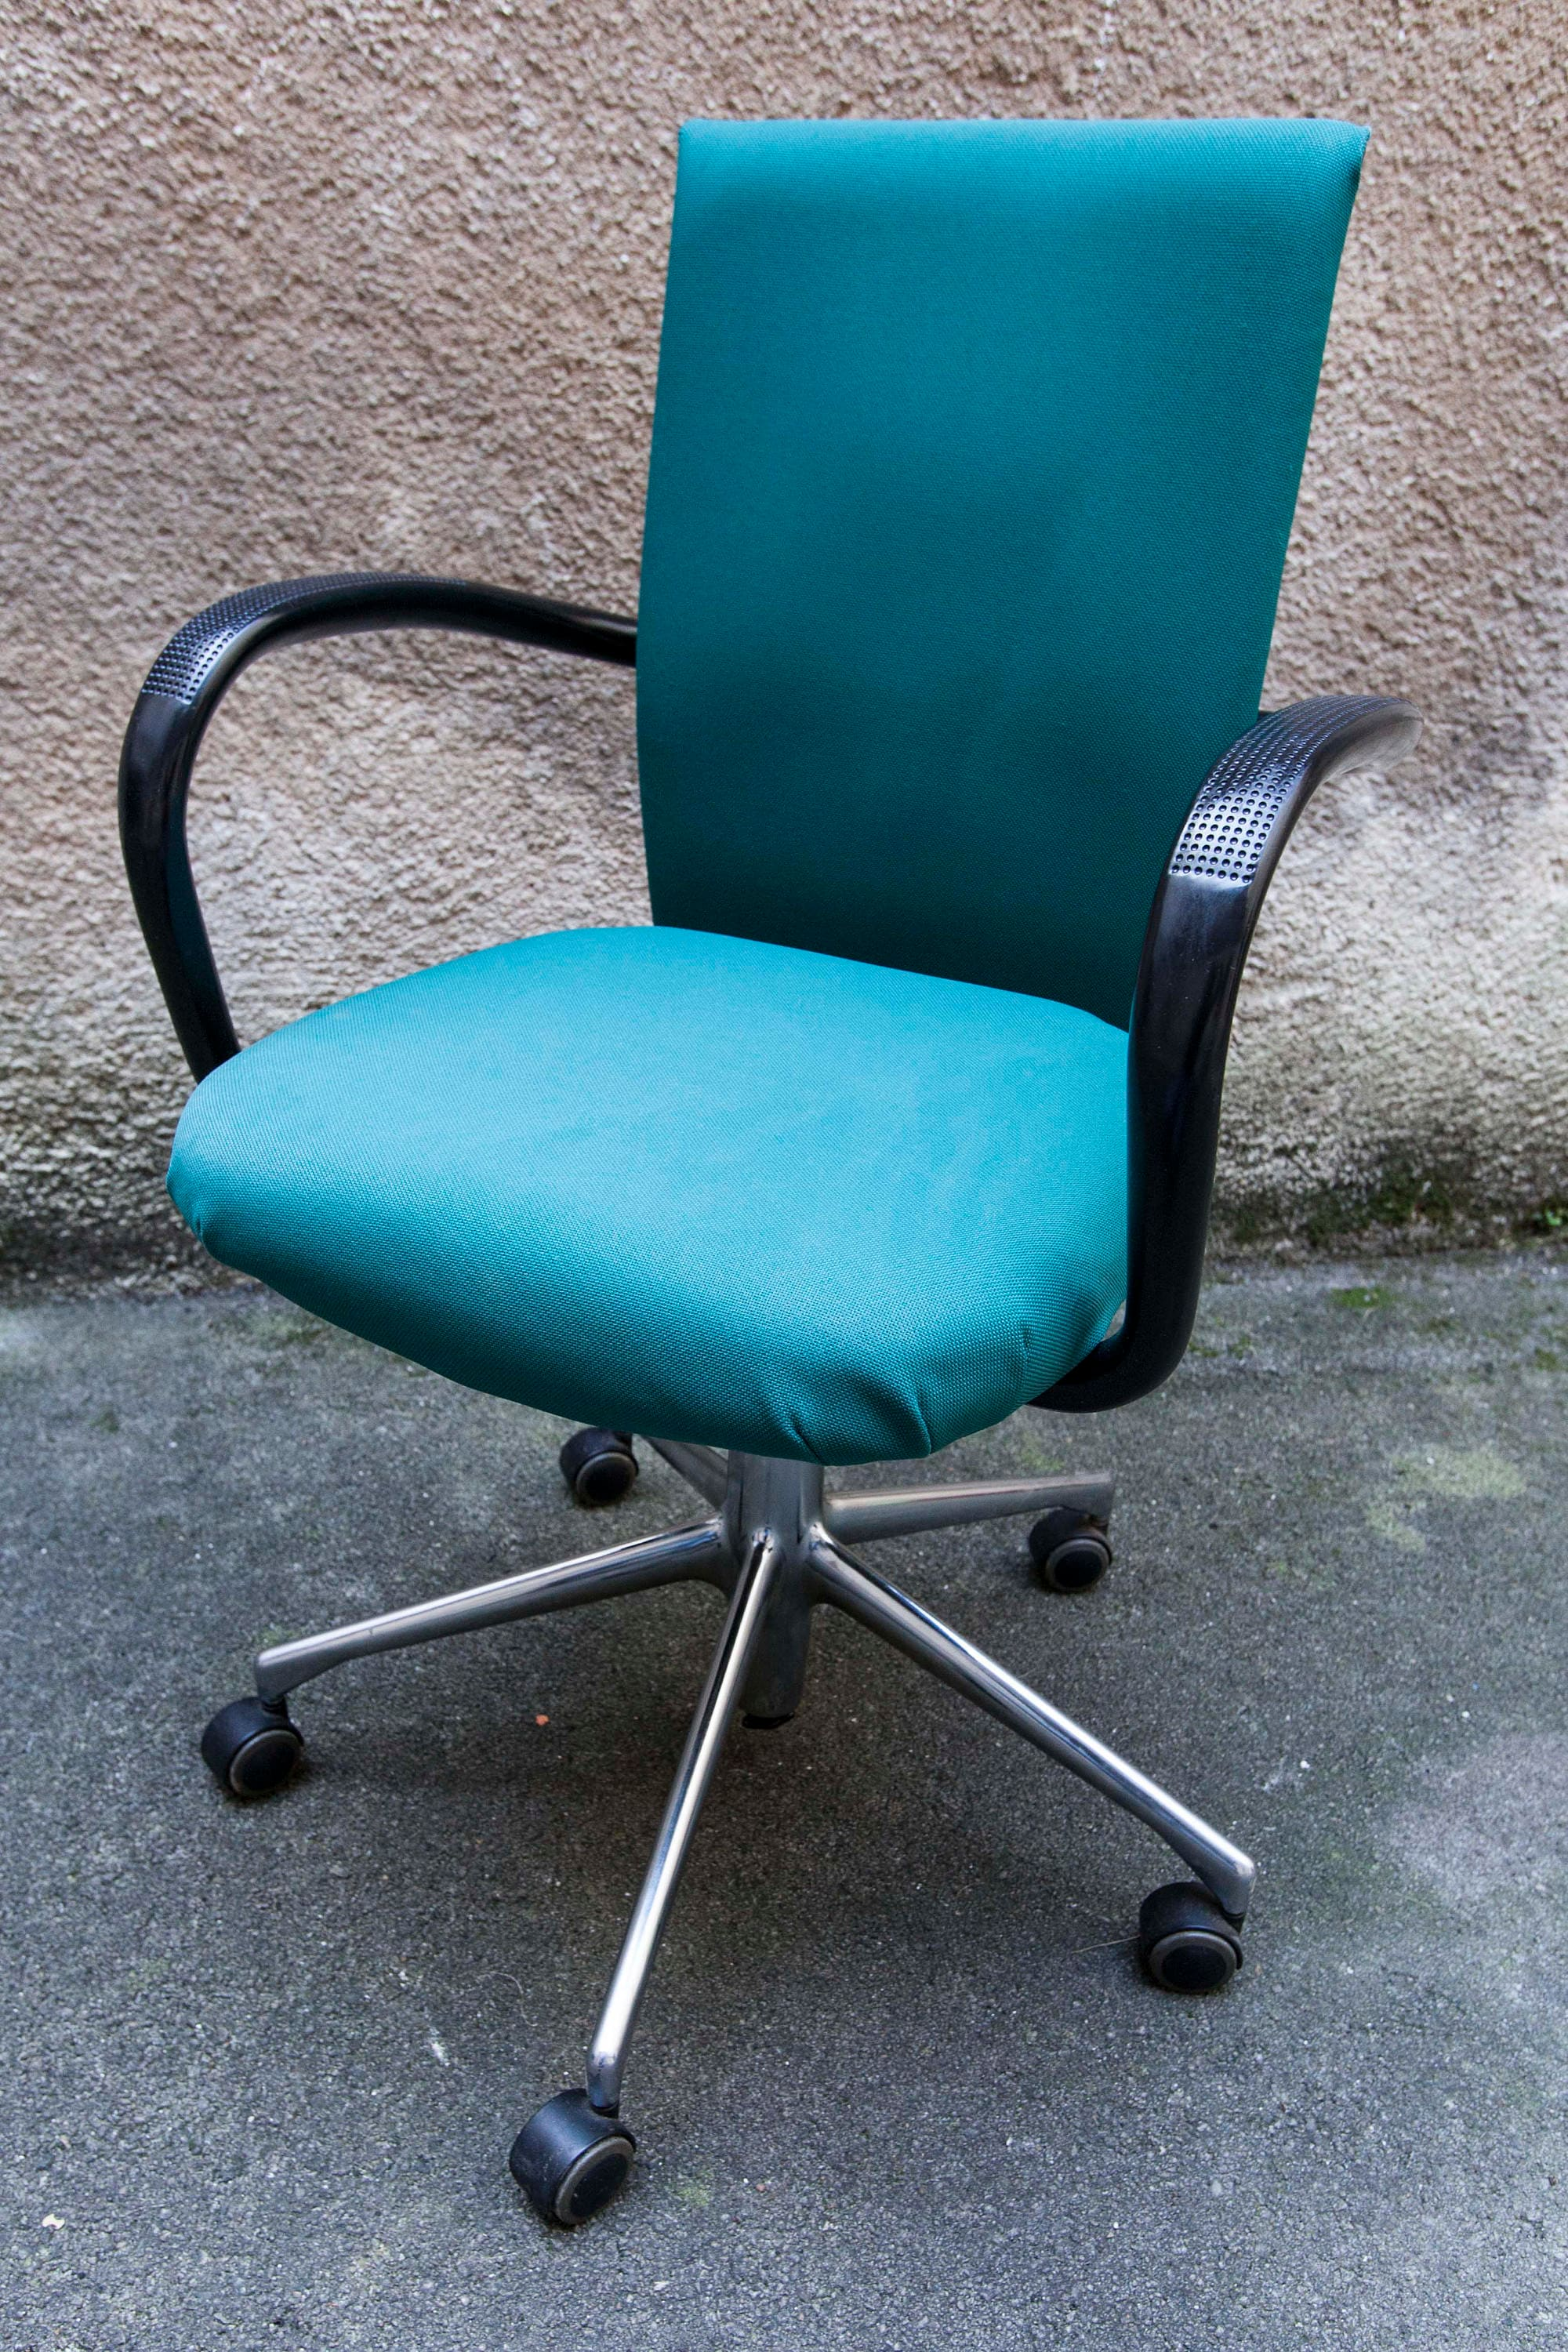 world chair product xxx velvet office aqua do cosmo market desk blue upholstered